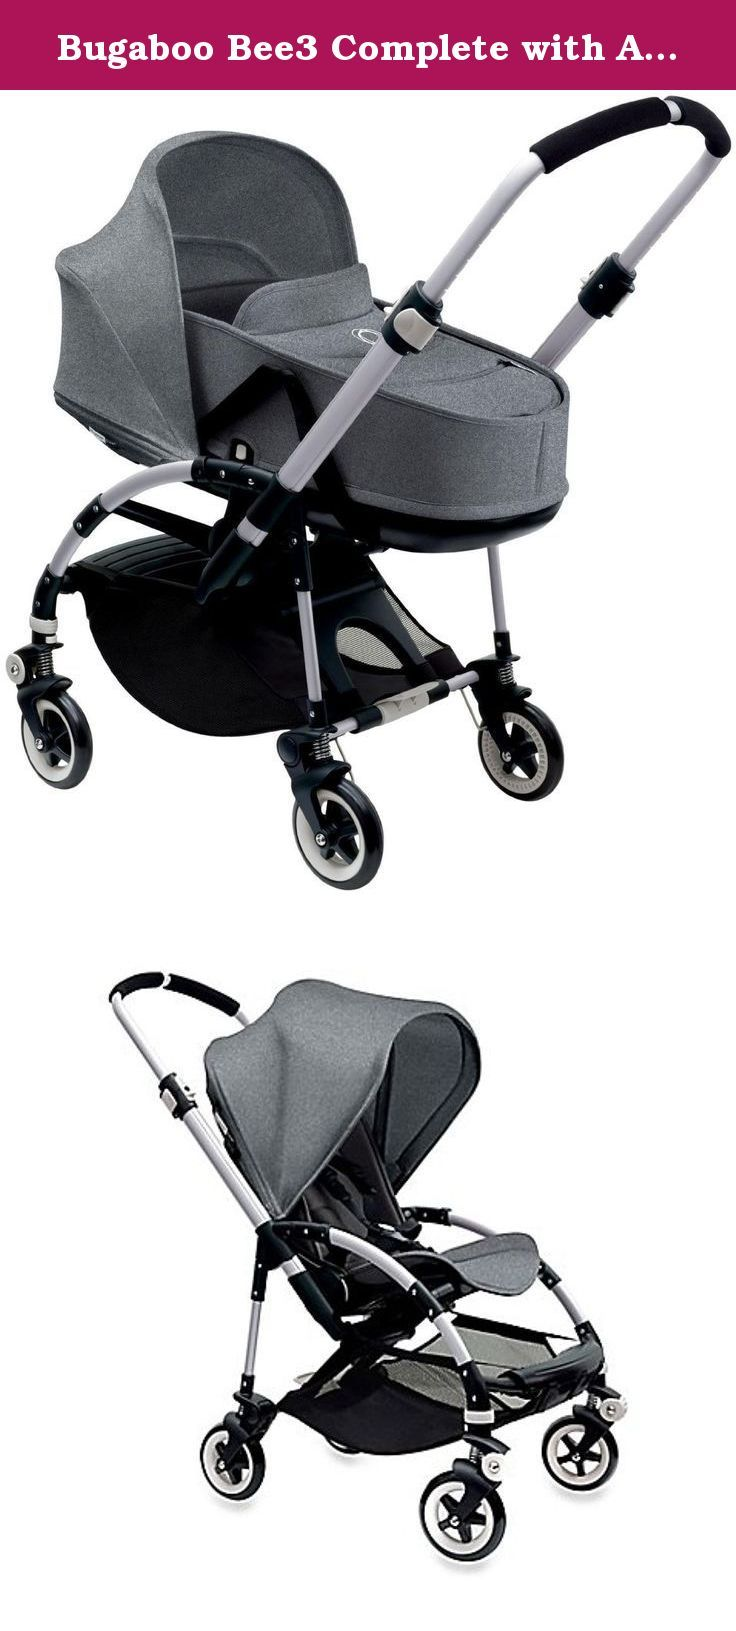 Bugaboo Bee3 Complete with Aluminum Base and Grey Melange